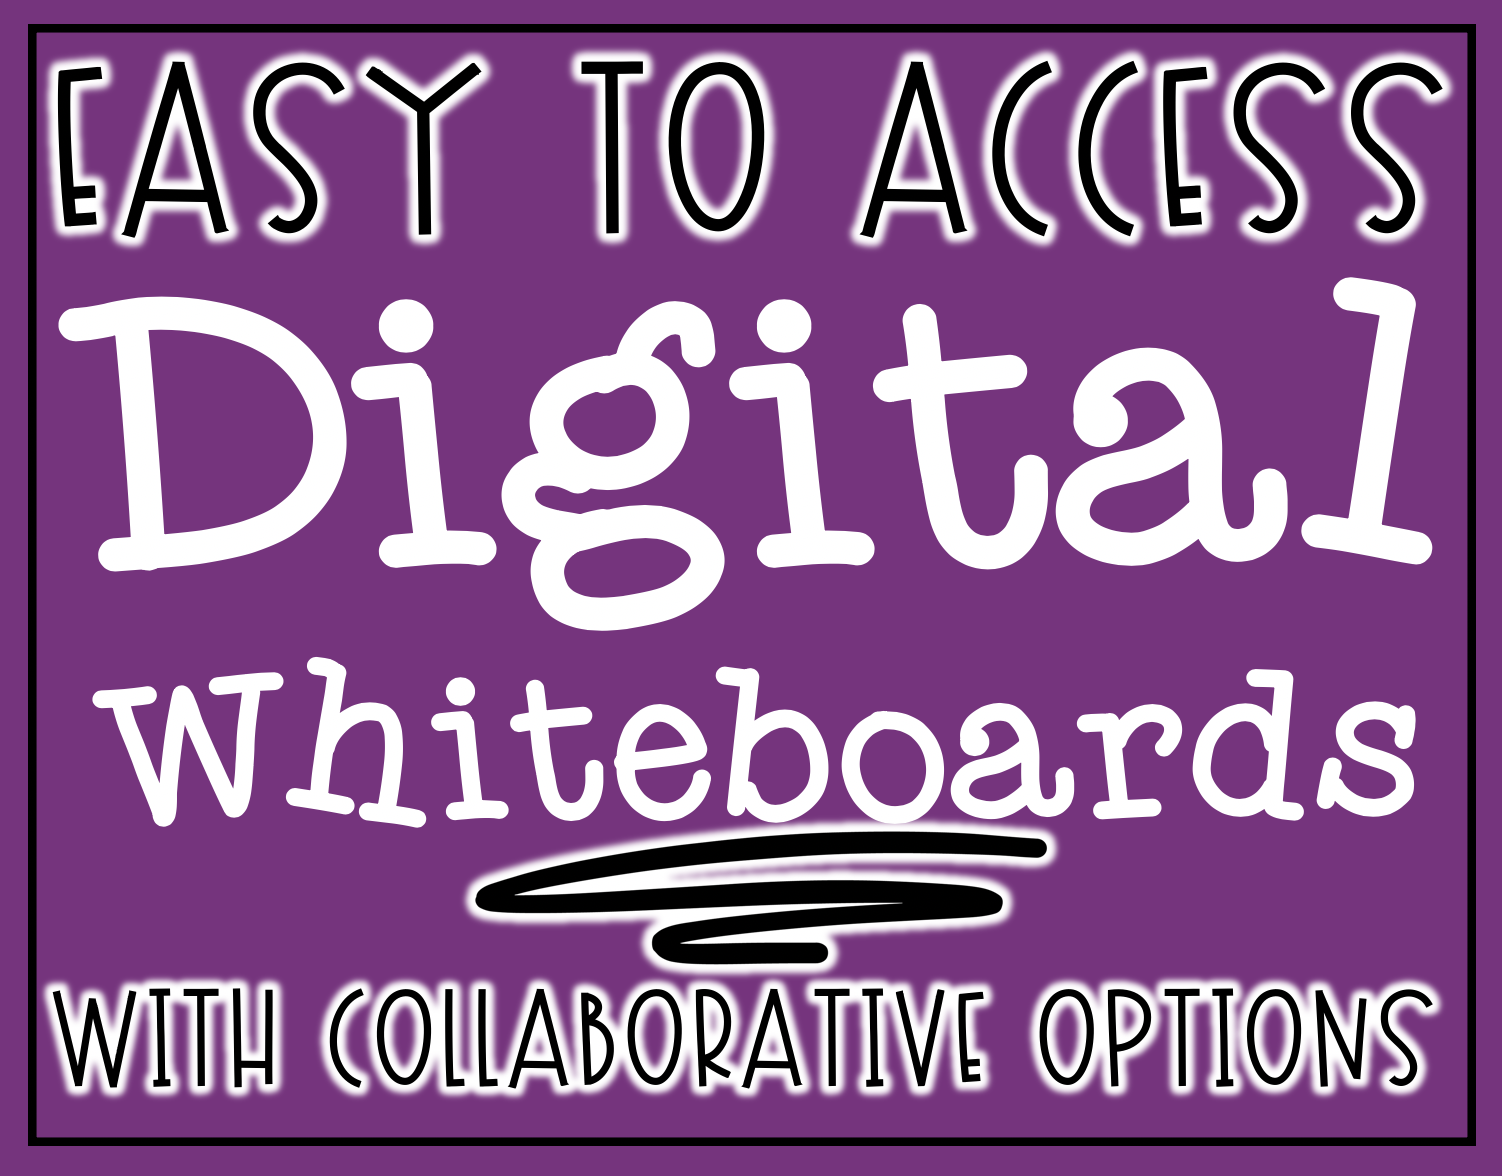 Easy to Access Digital Whiteboards with Collaborative Options